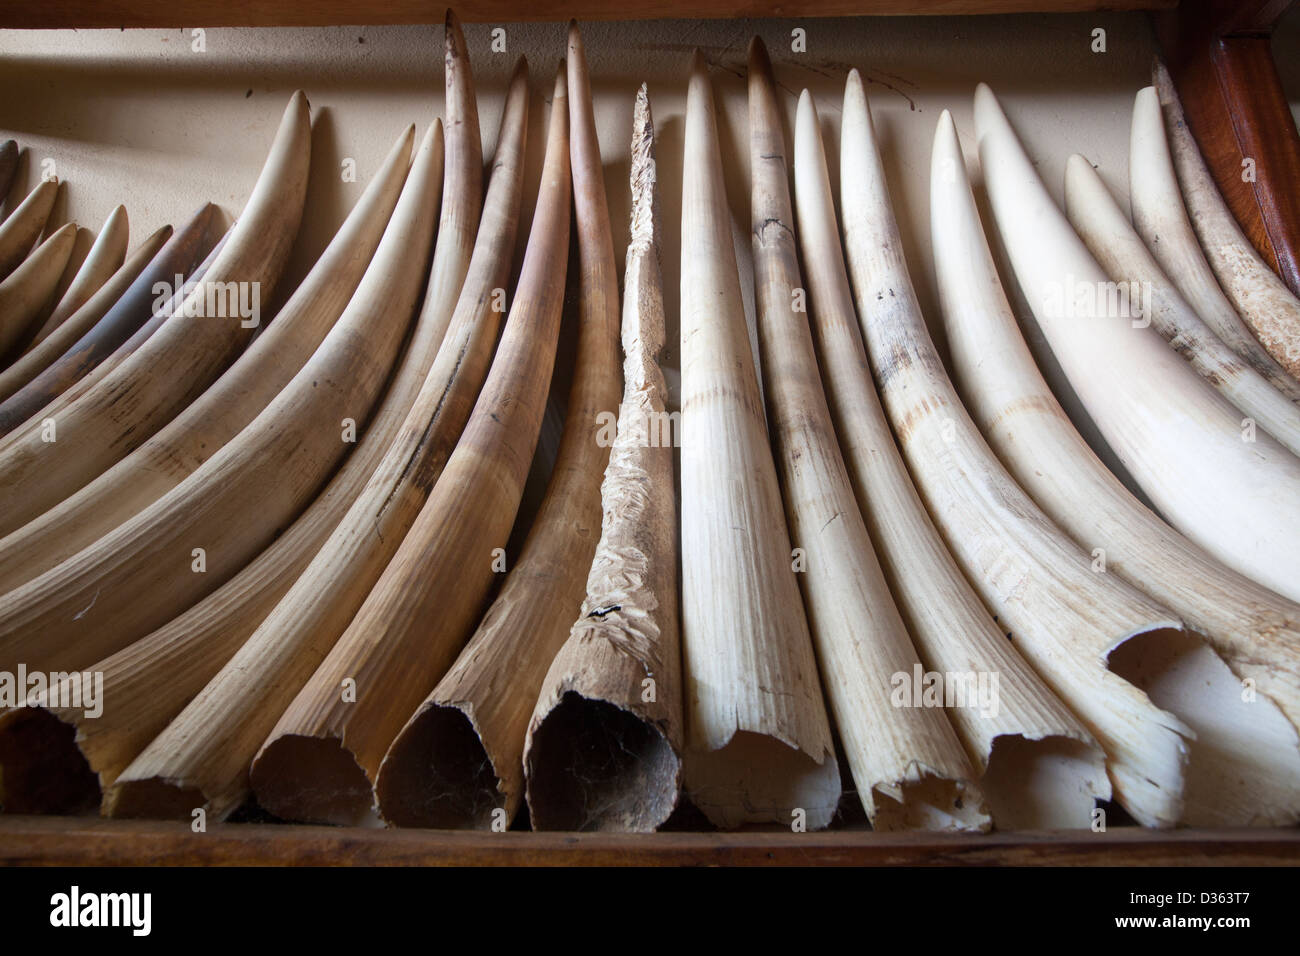 CAMEROON, 3rd October 2012: Ivory confiscated by the Ministry of Forests and Wildlife from poachers and held in - Stock Image